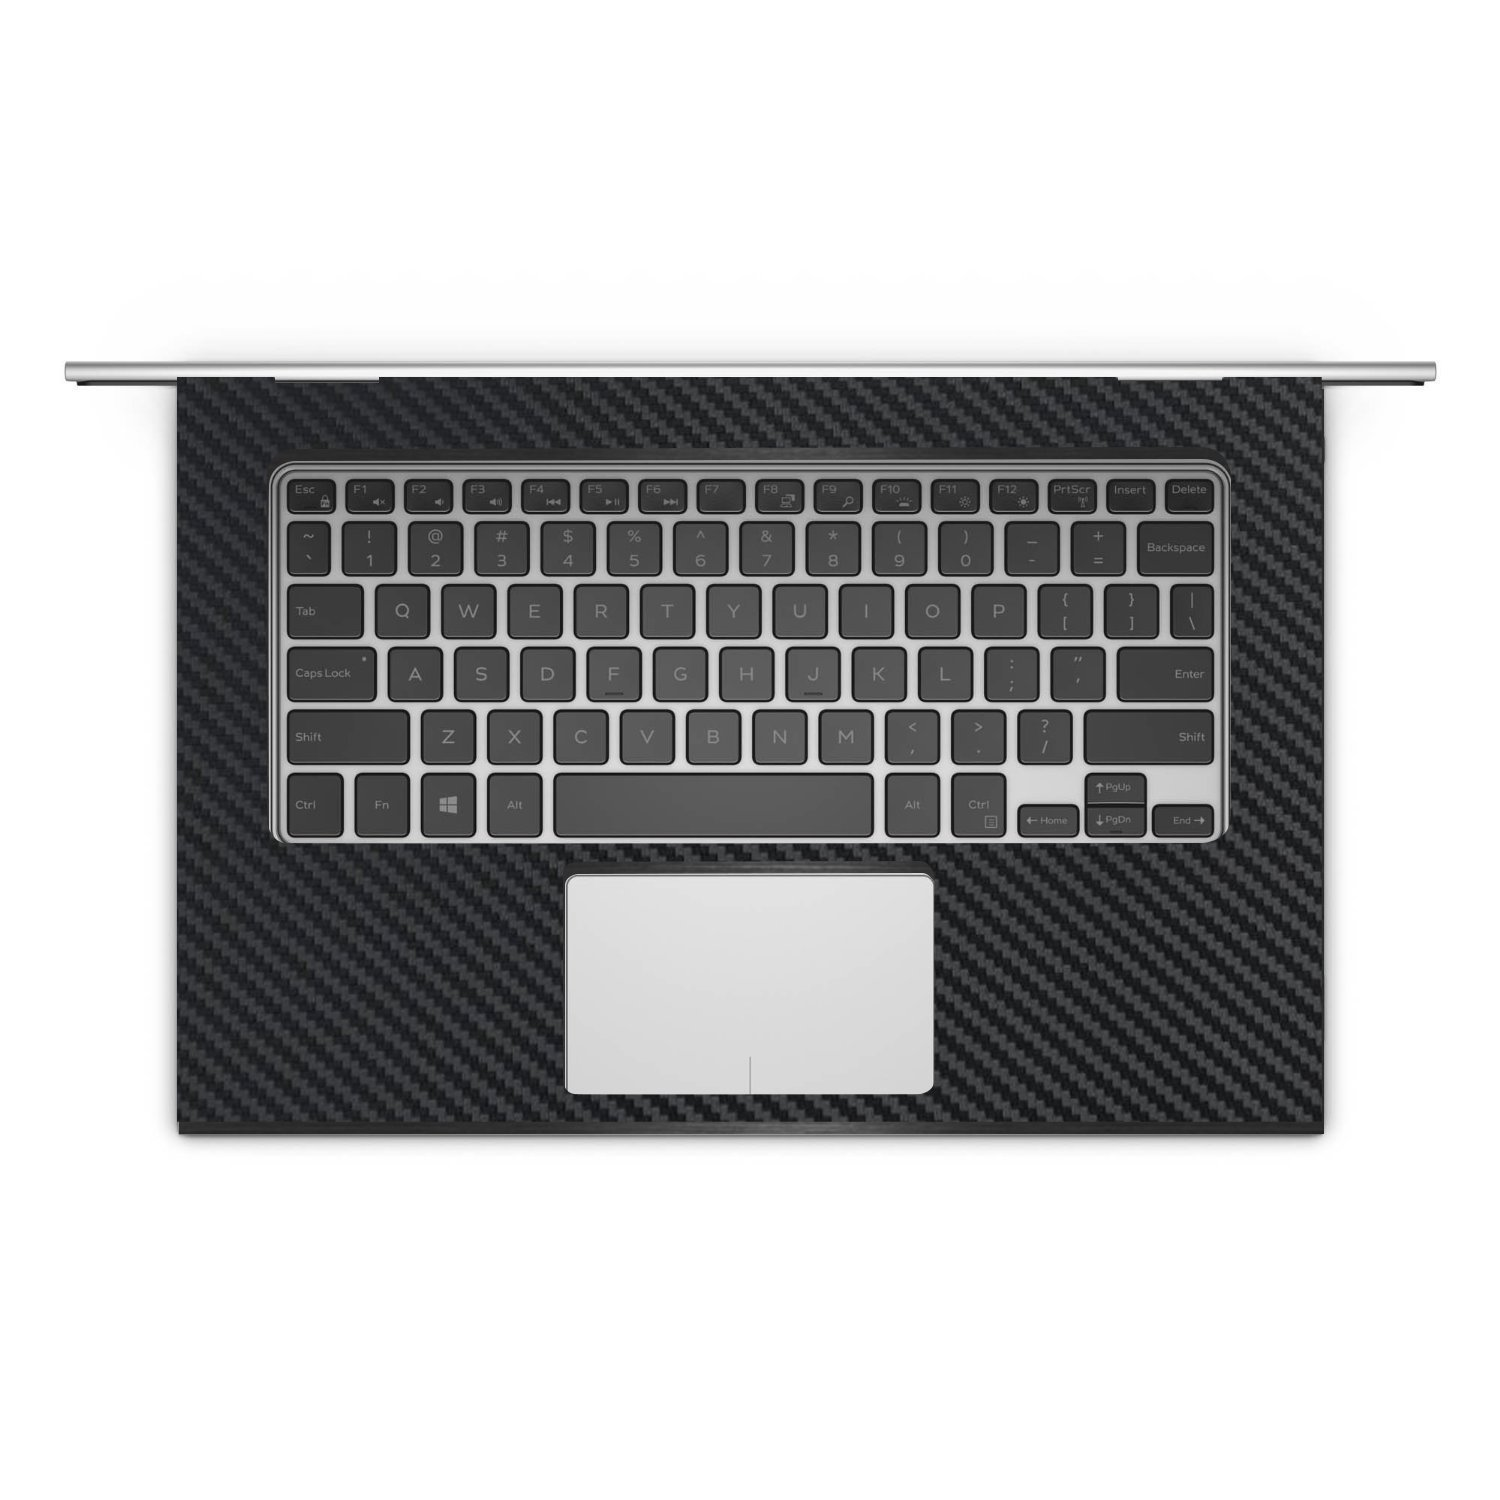 "Black Carbon Skin Cover Guard for Dell Inspiron 15 7559 15 6"" Laptop"